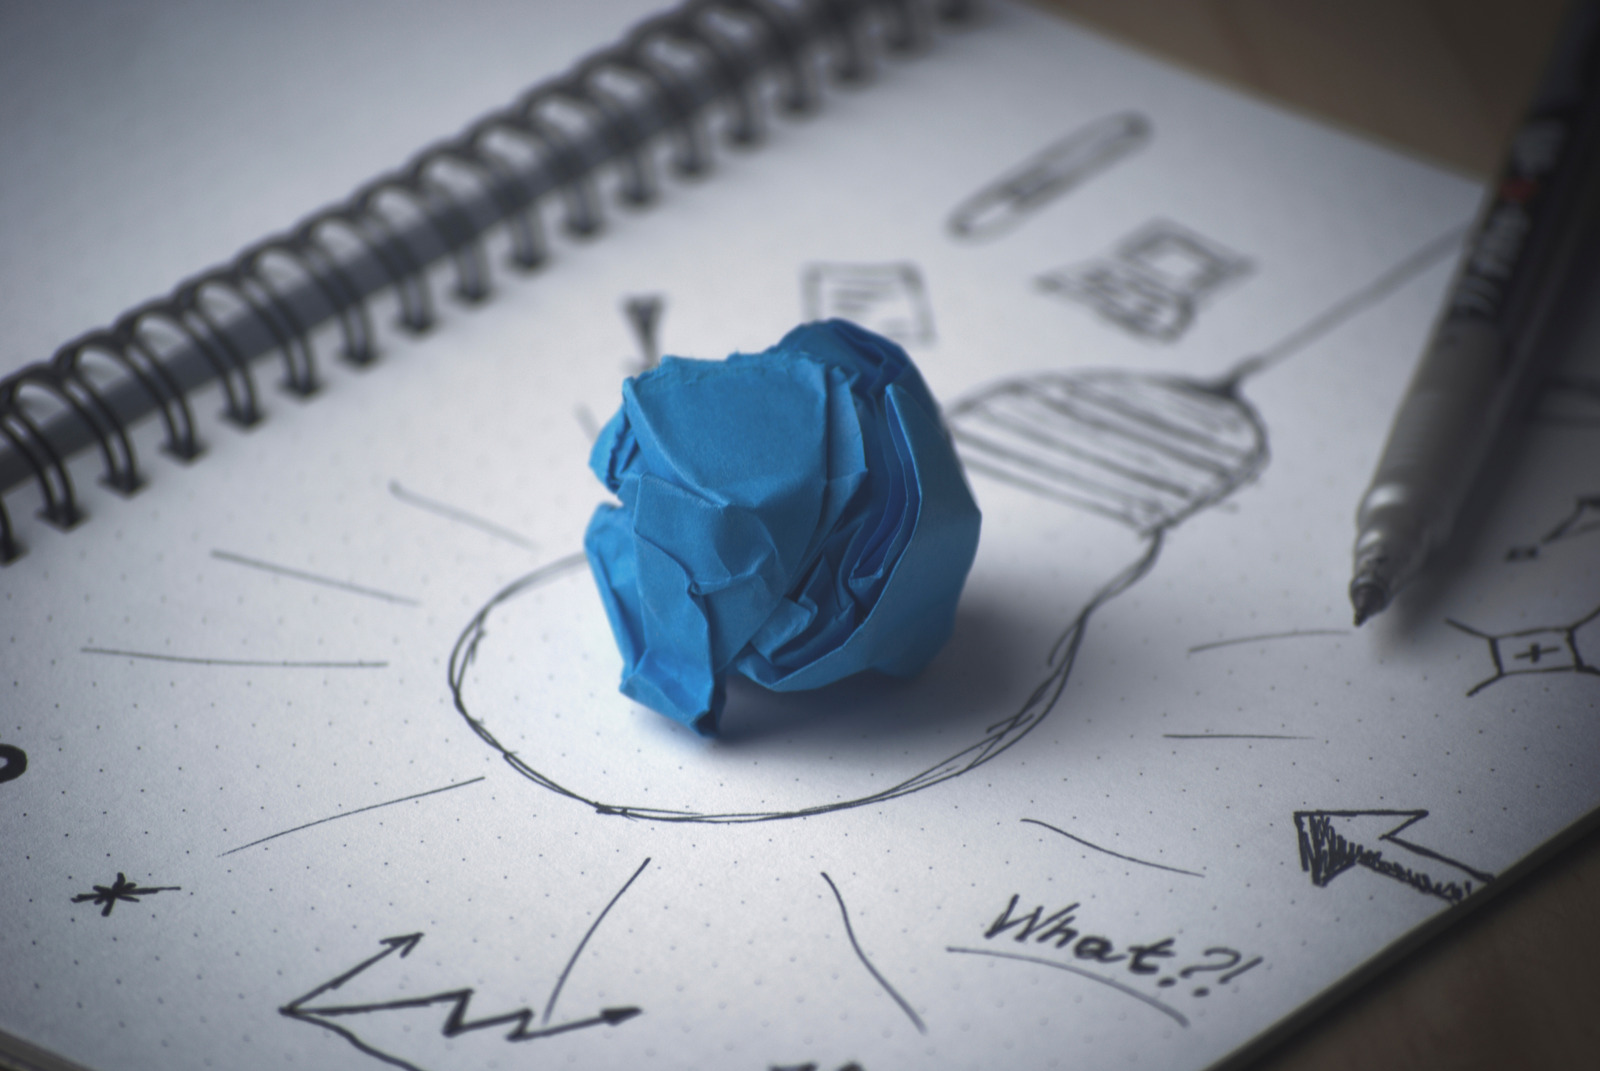 Photo of a book with a drawing of lightbulb on the page with various sketches and charts around it. In the middle of the bulb is a scrunched up piece of blue paper.